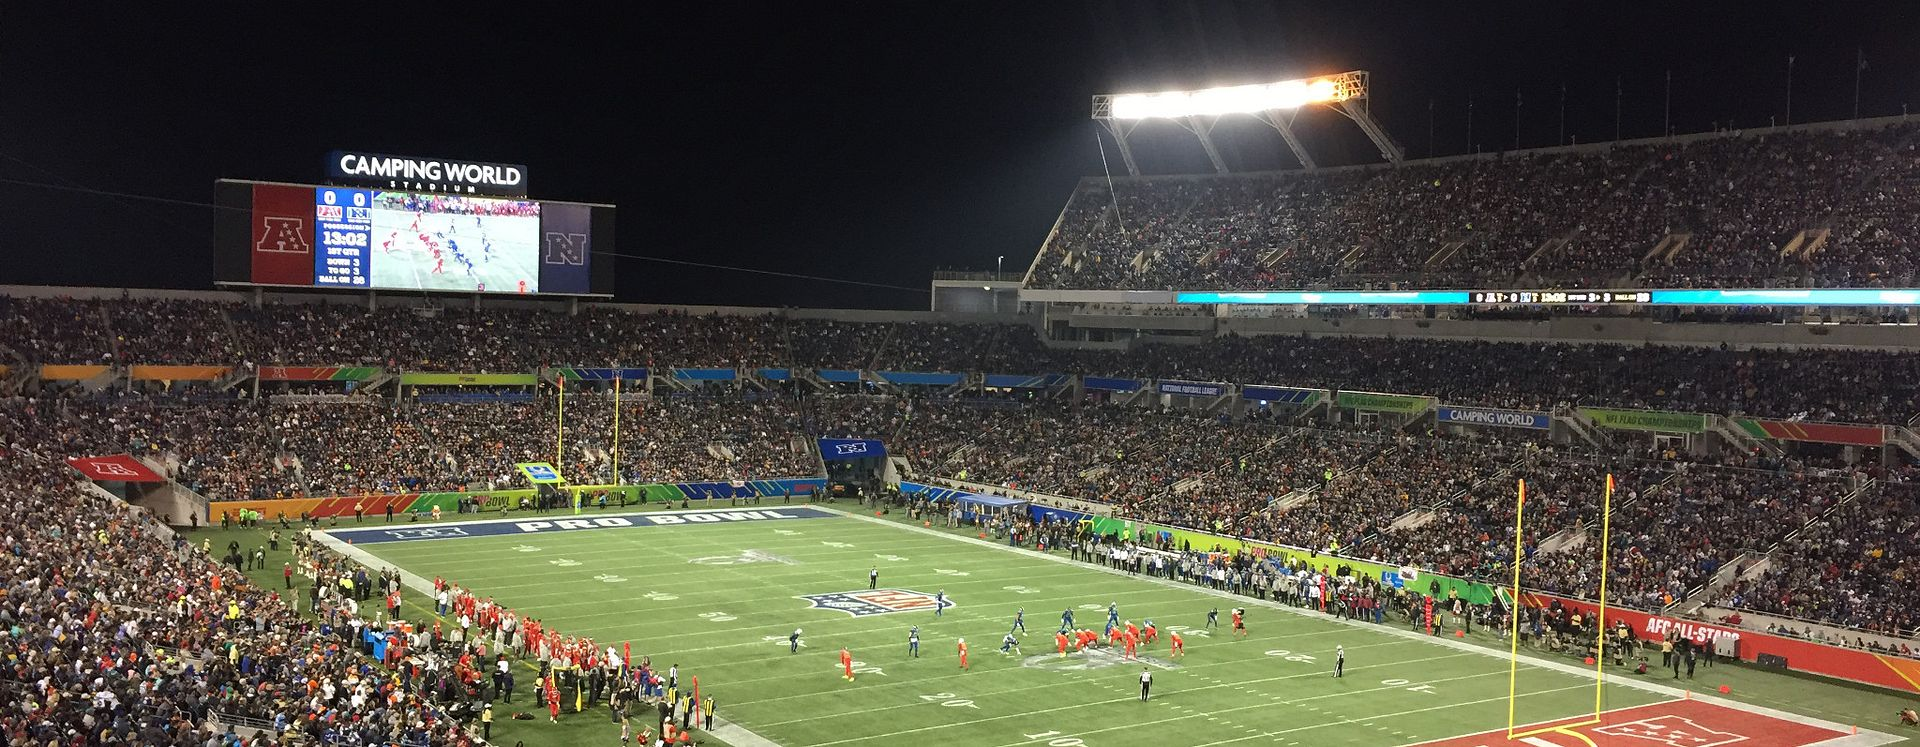 Pro Bowl football game at Camping World stadium